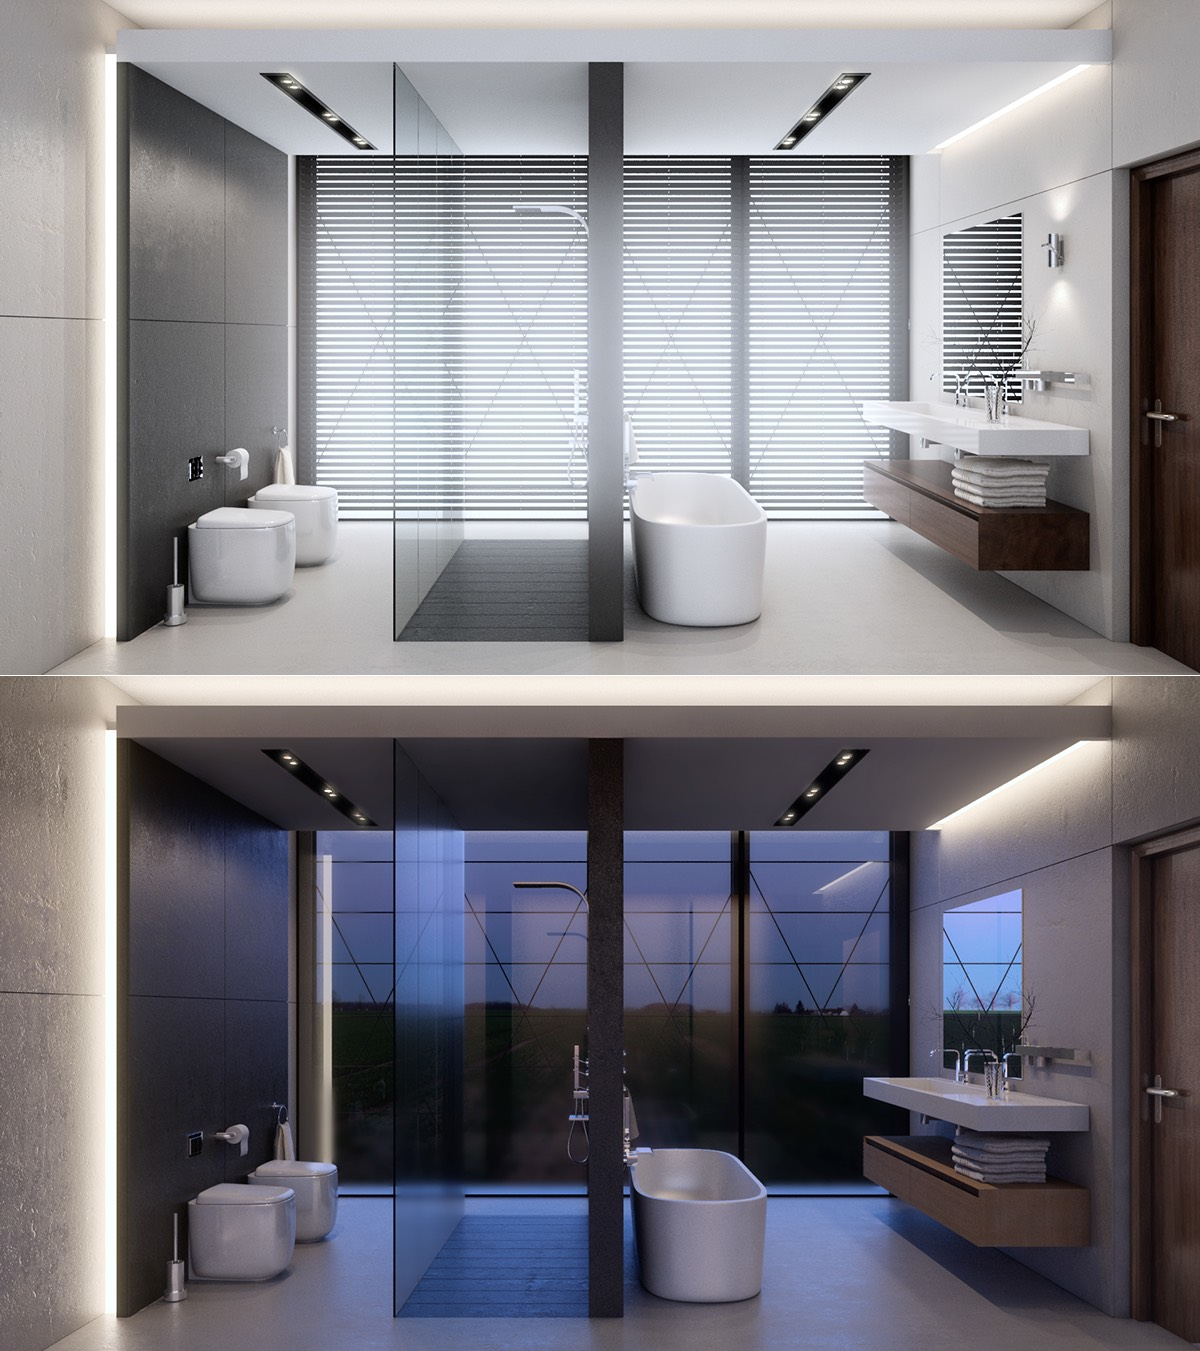 36 Bathtub Ideas With Luxurious Appeal on 2015 luxury bedroom interior design, 2015 modern kitchen designs, 2015 small bathroom designs,